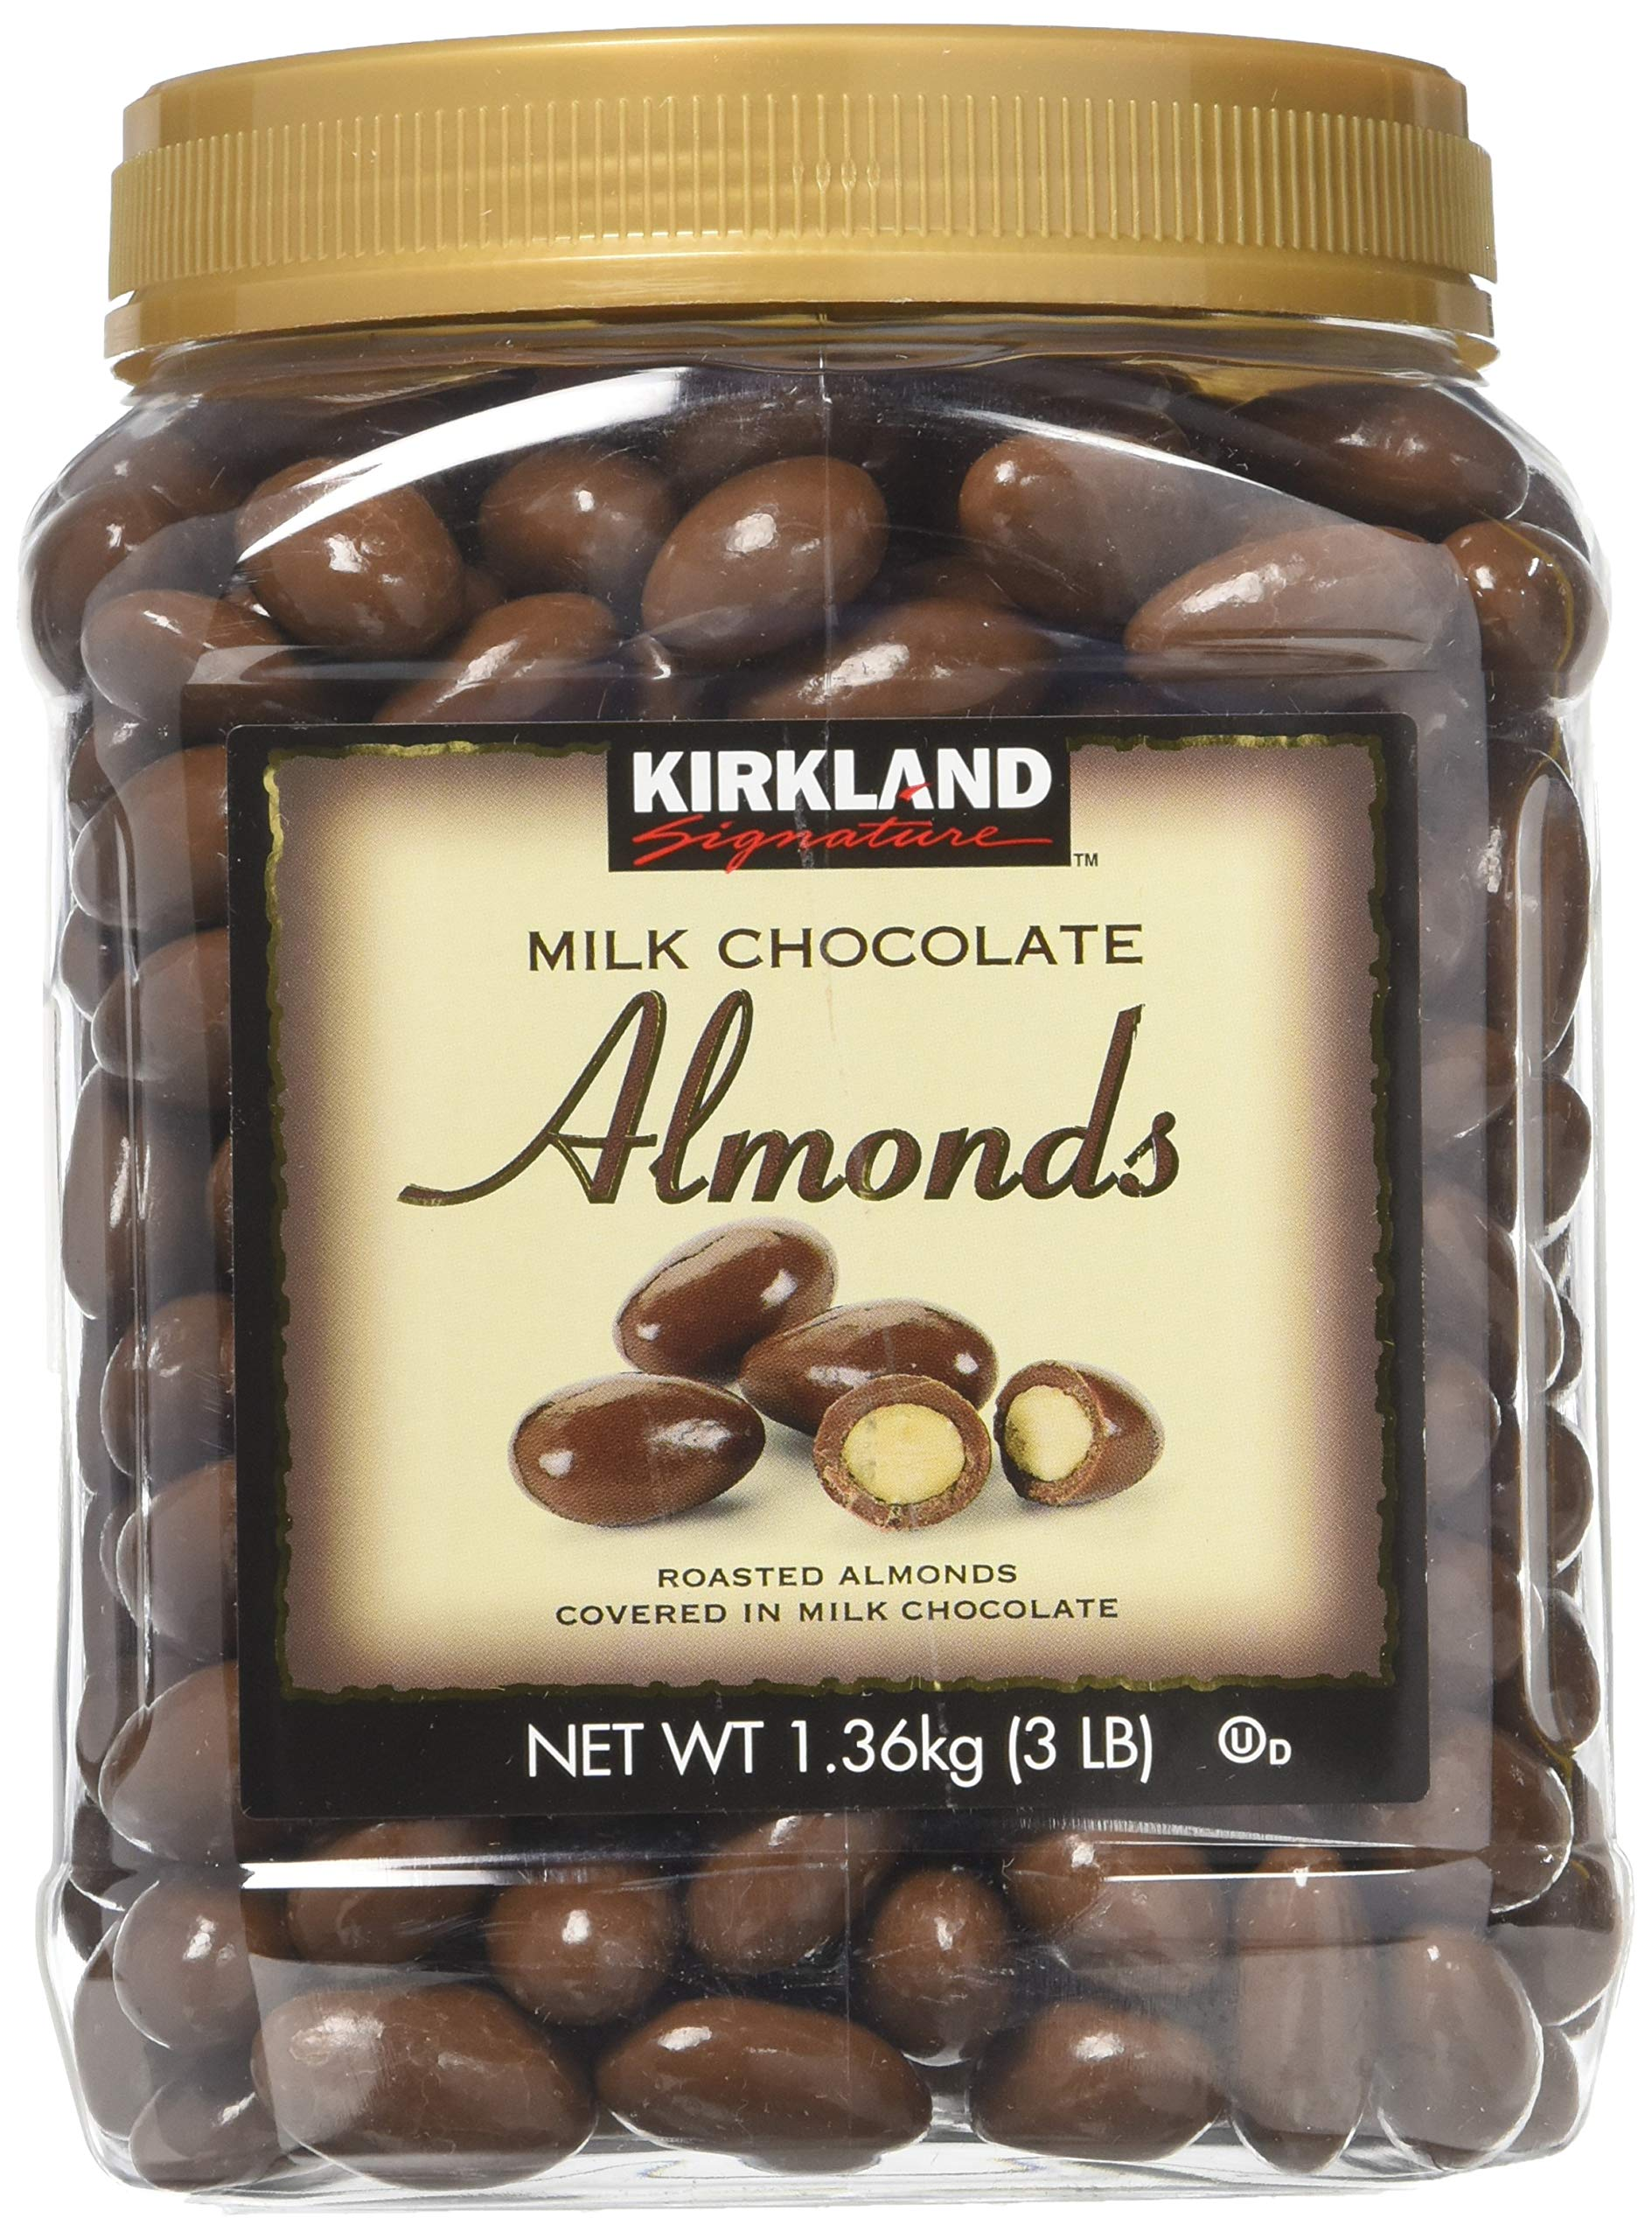 Kirkland Signature Milk Chocolate Almonds 2 Pack JAR by Kirkland Signature